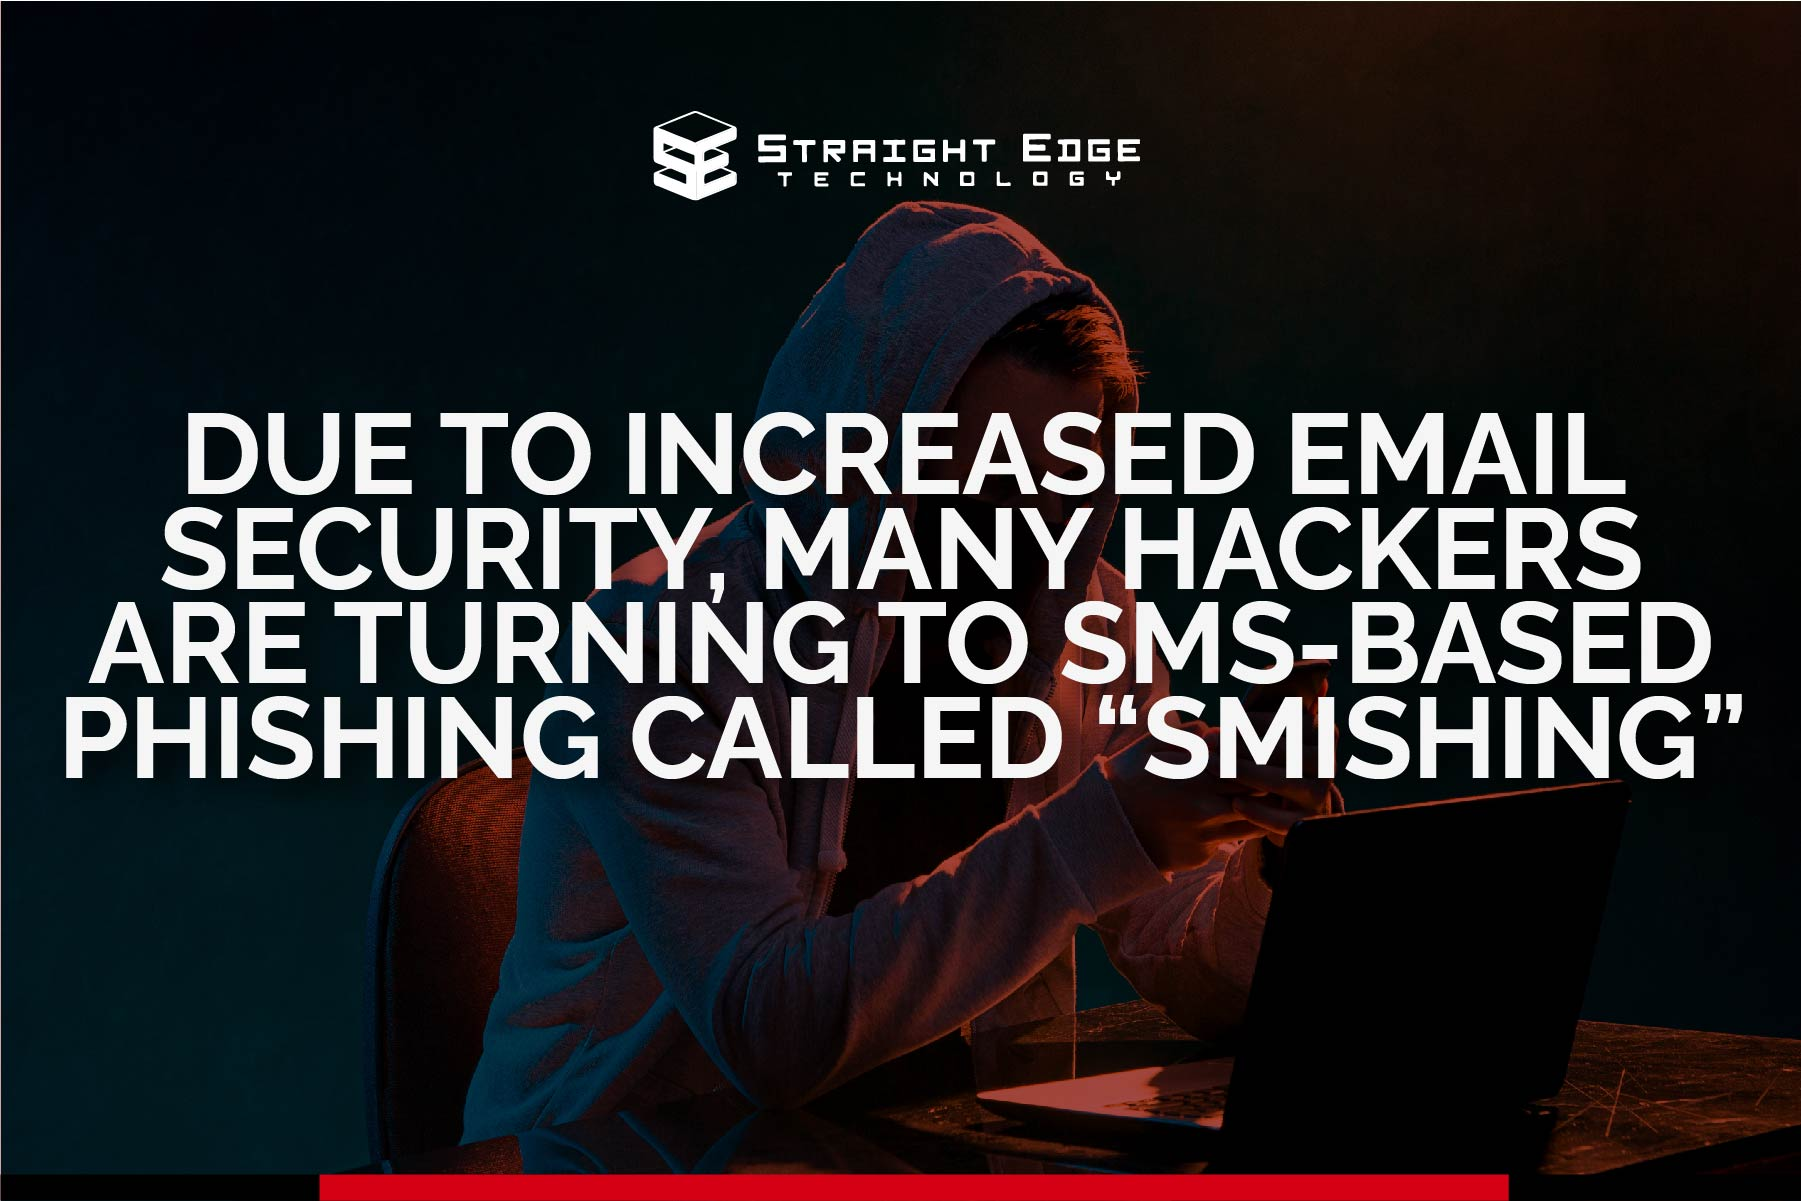 sms-based phishing is more popular because of email spam blockers